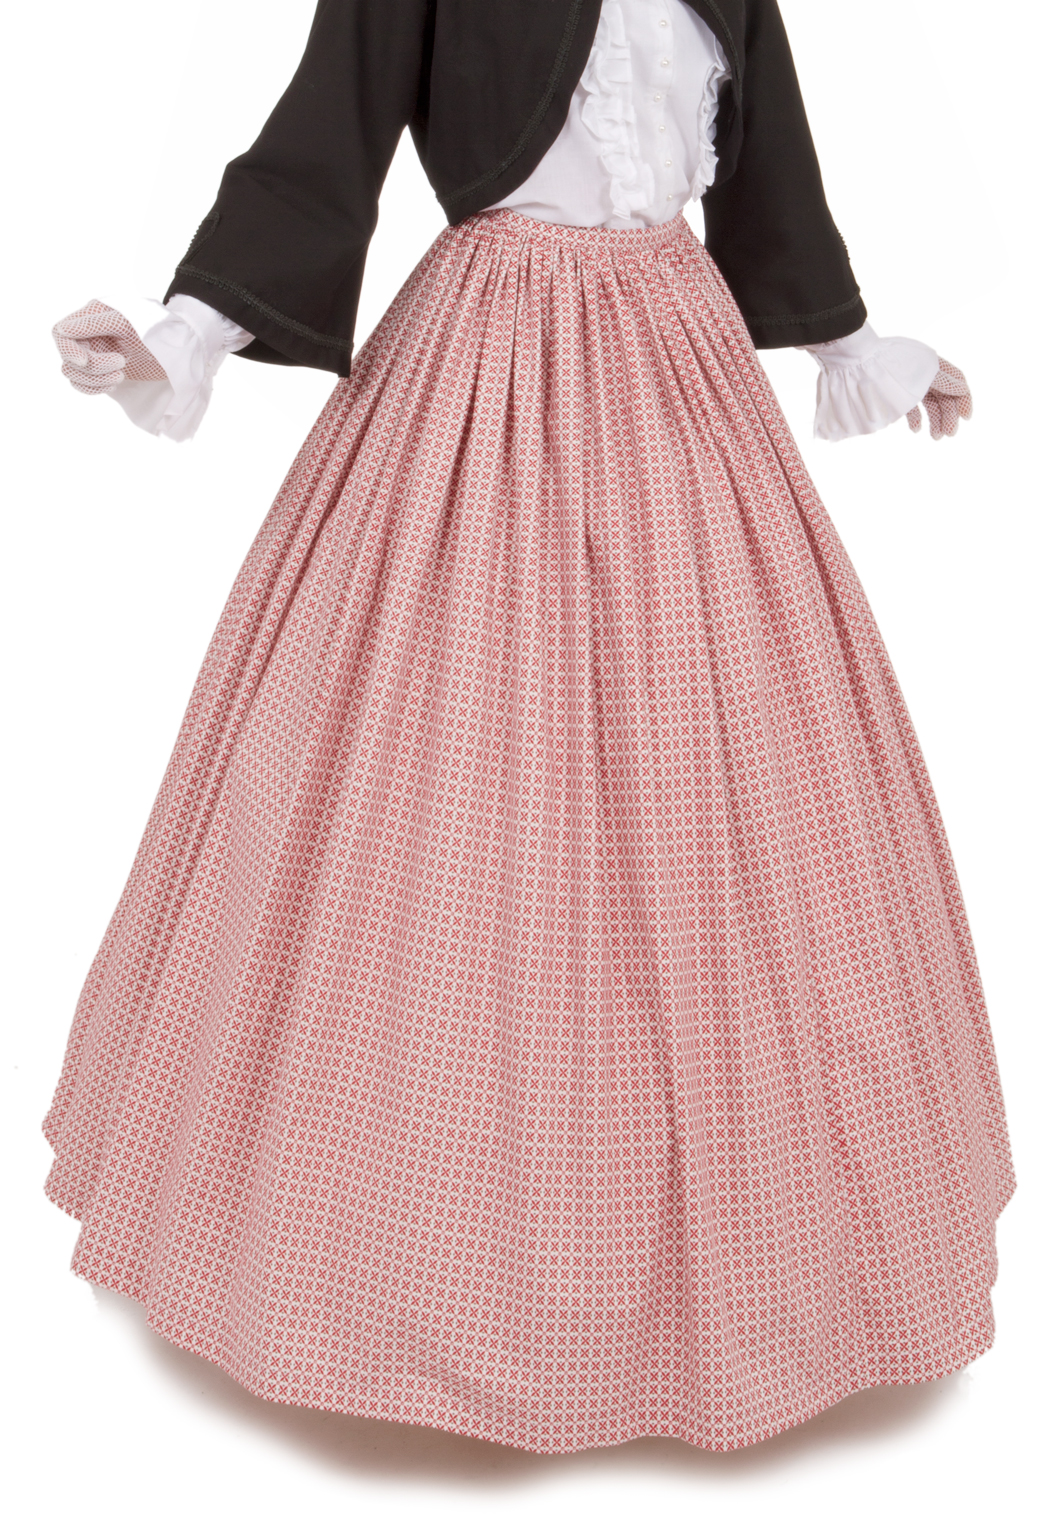 Sarah Emma Civil War Skirt